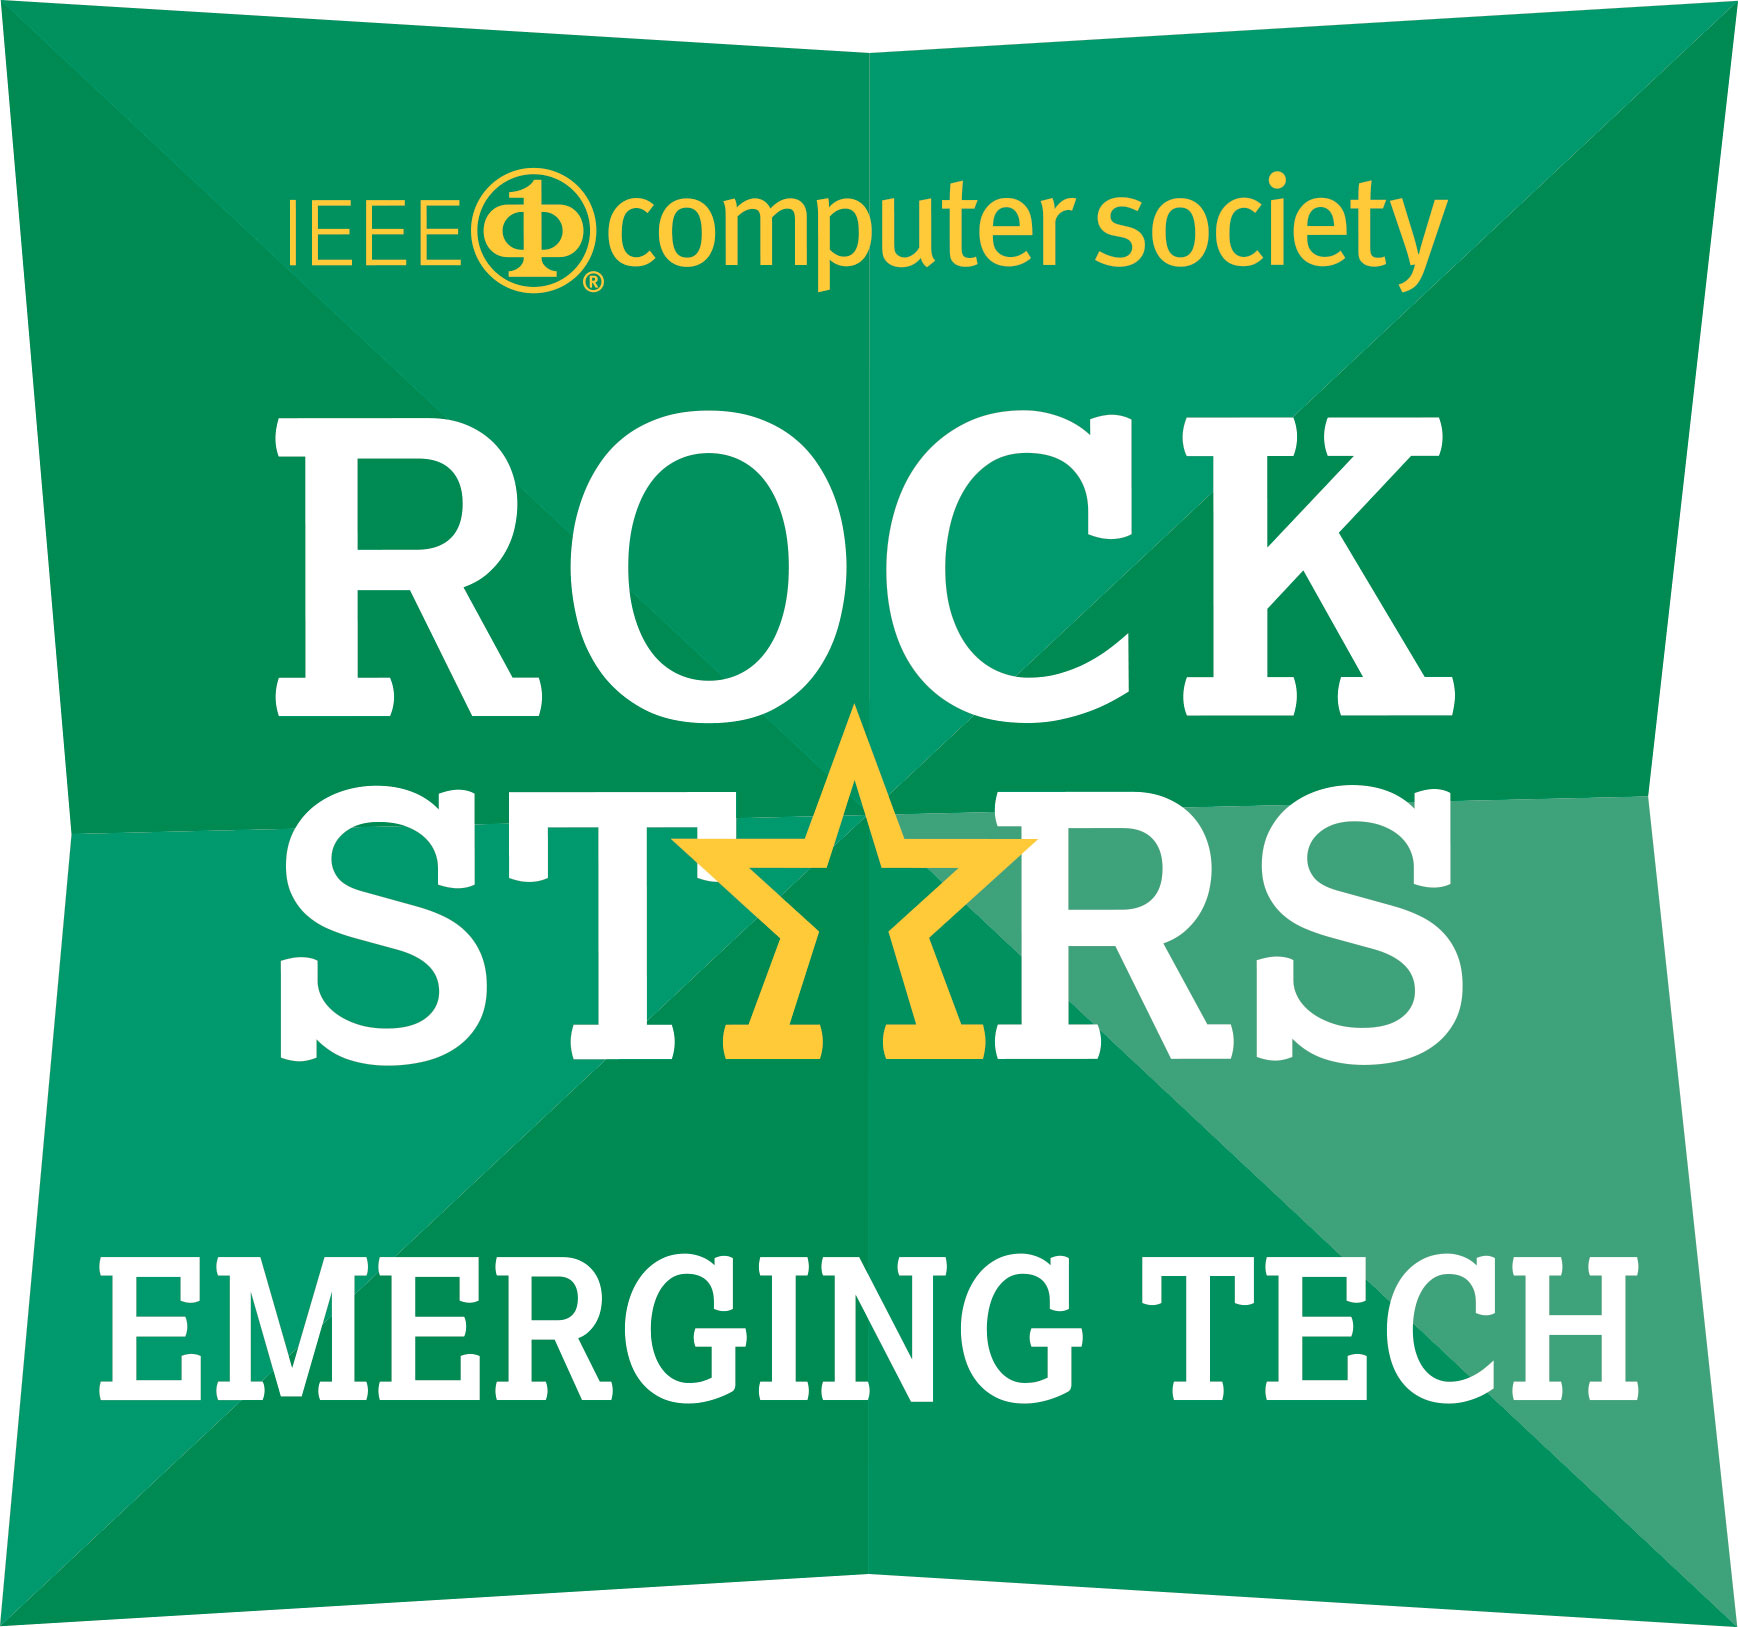 IEEE Computer Society Rock Stars of Emerging Tech